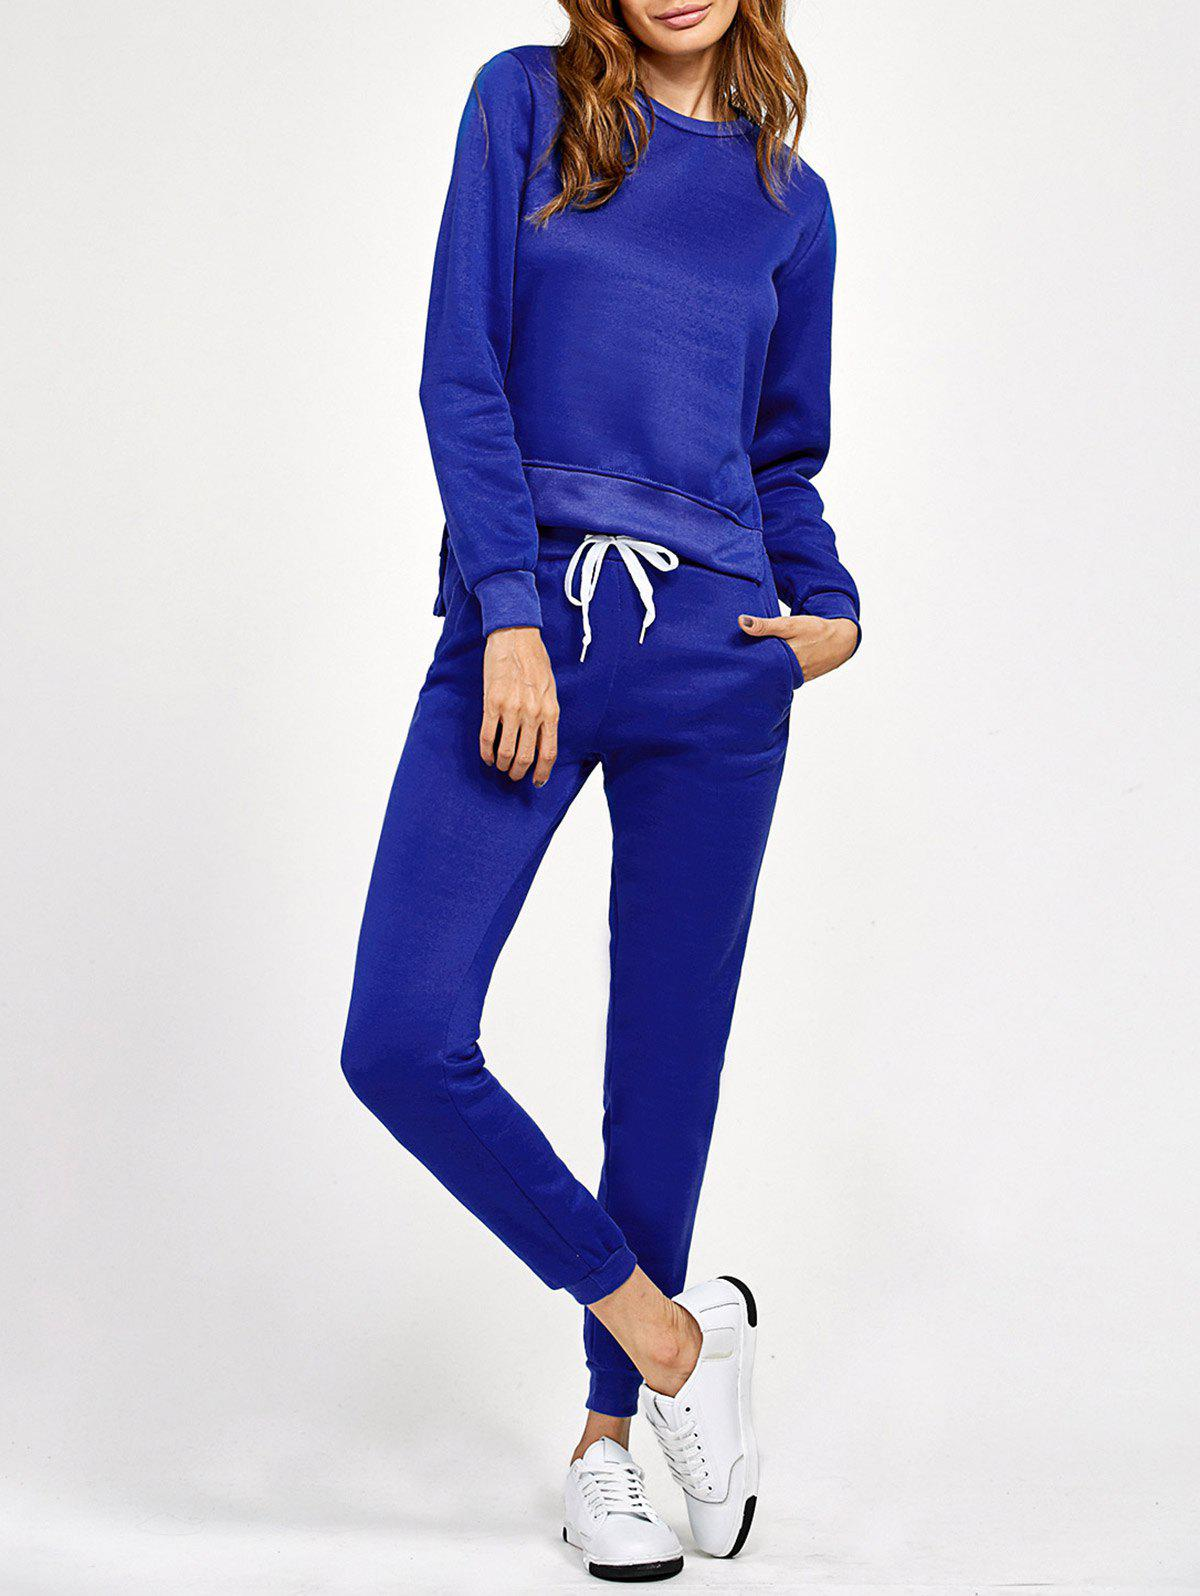 Shops Side Slit High Low Sweatshirt and Pants